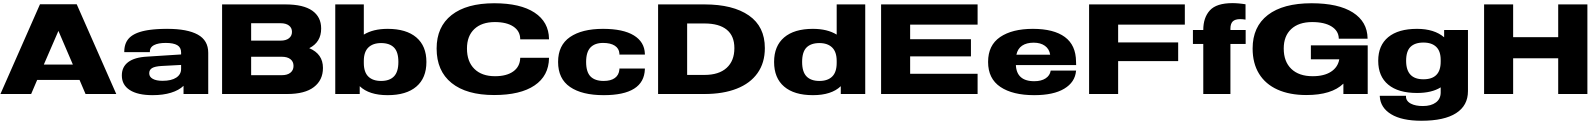 Molde Expanded Bold Font